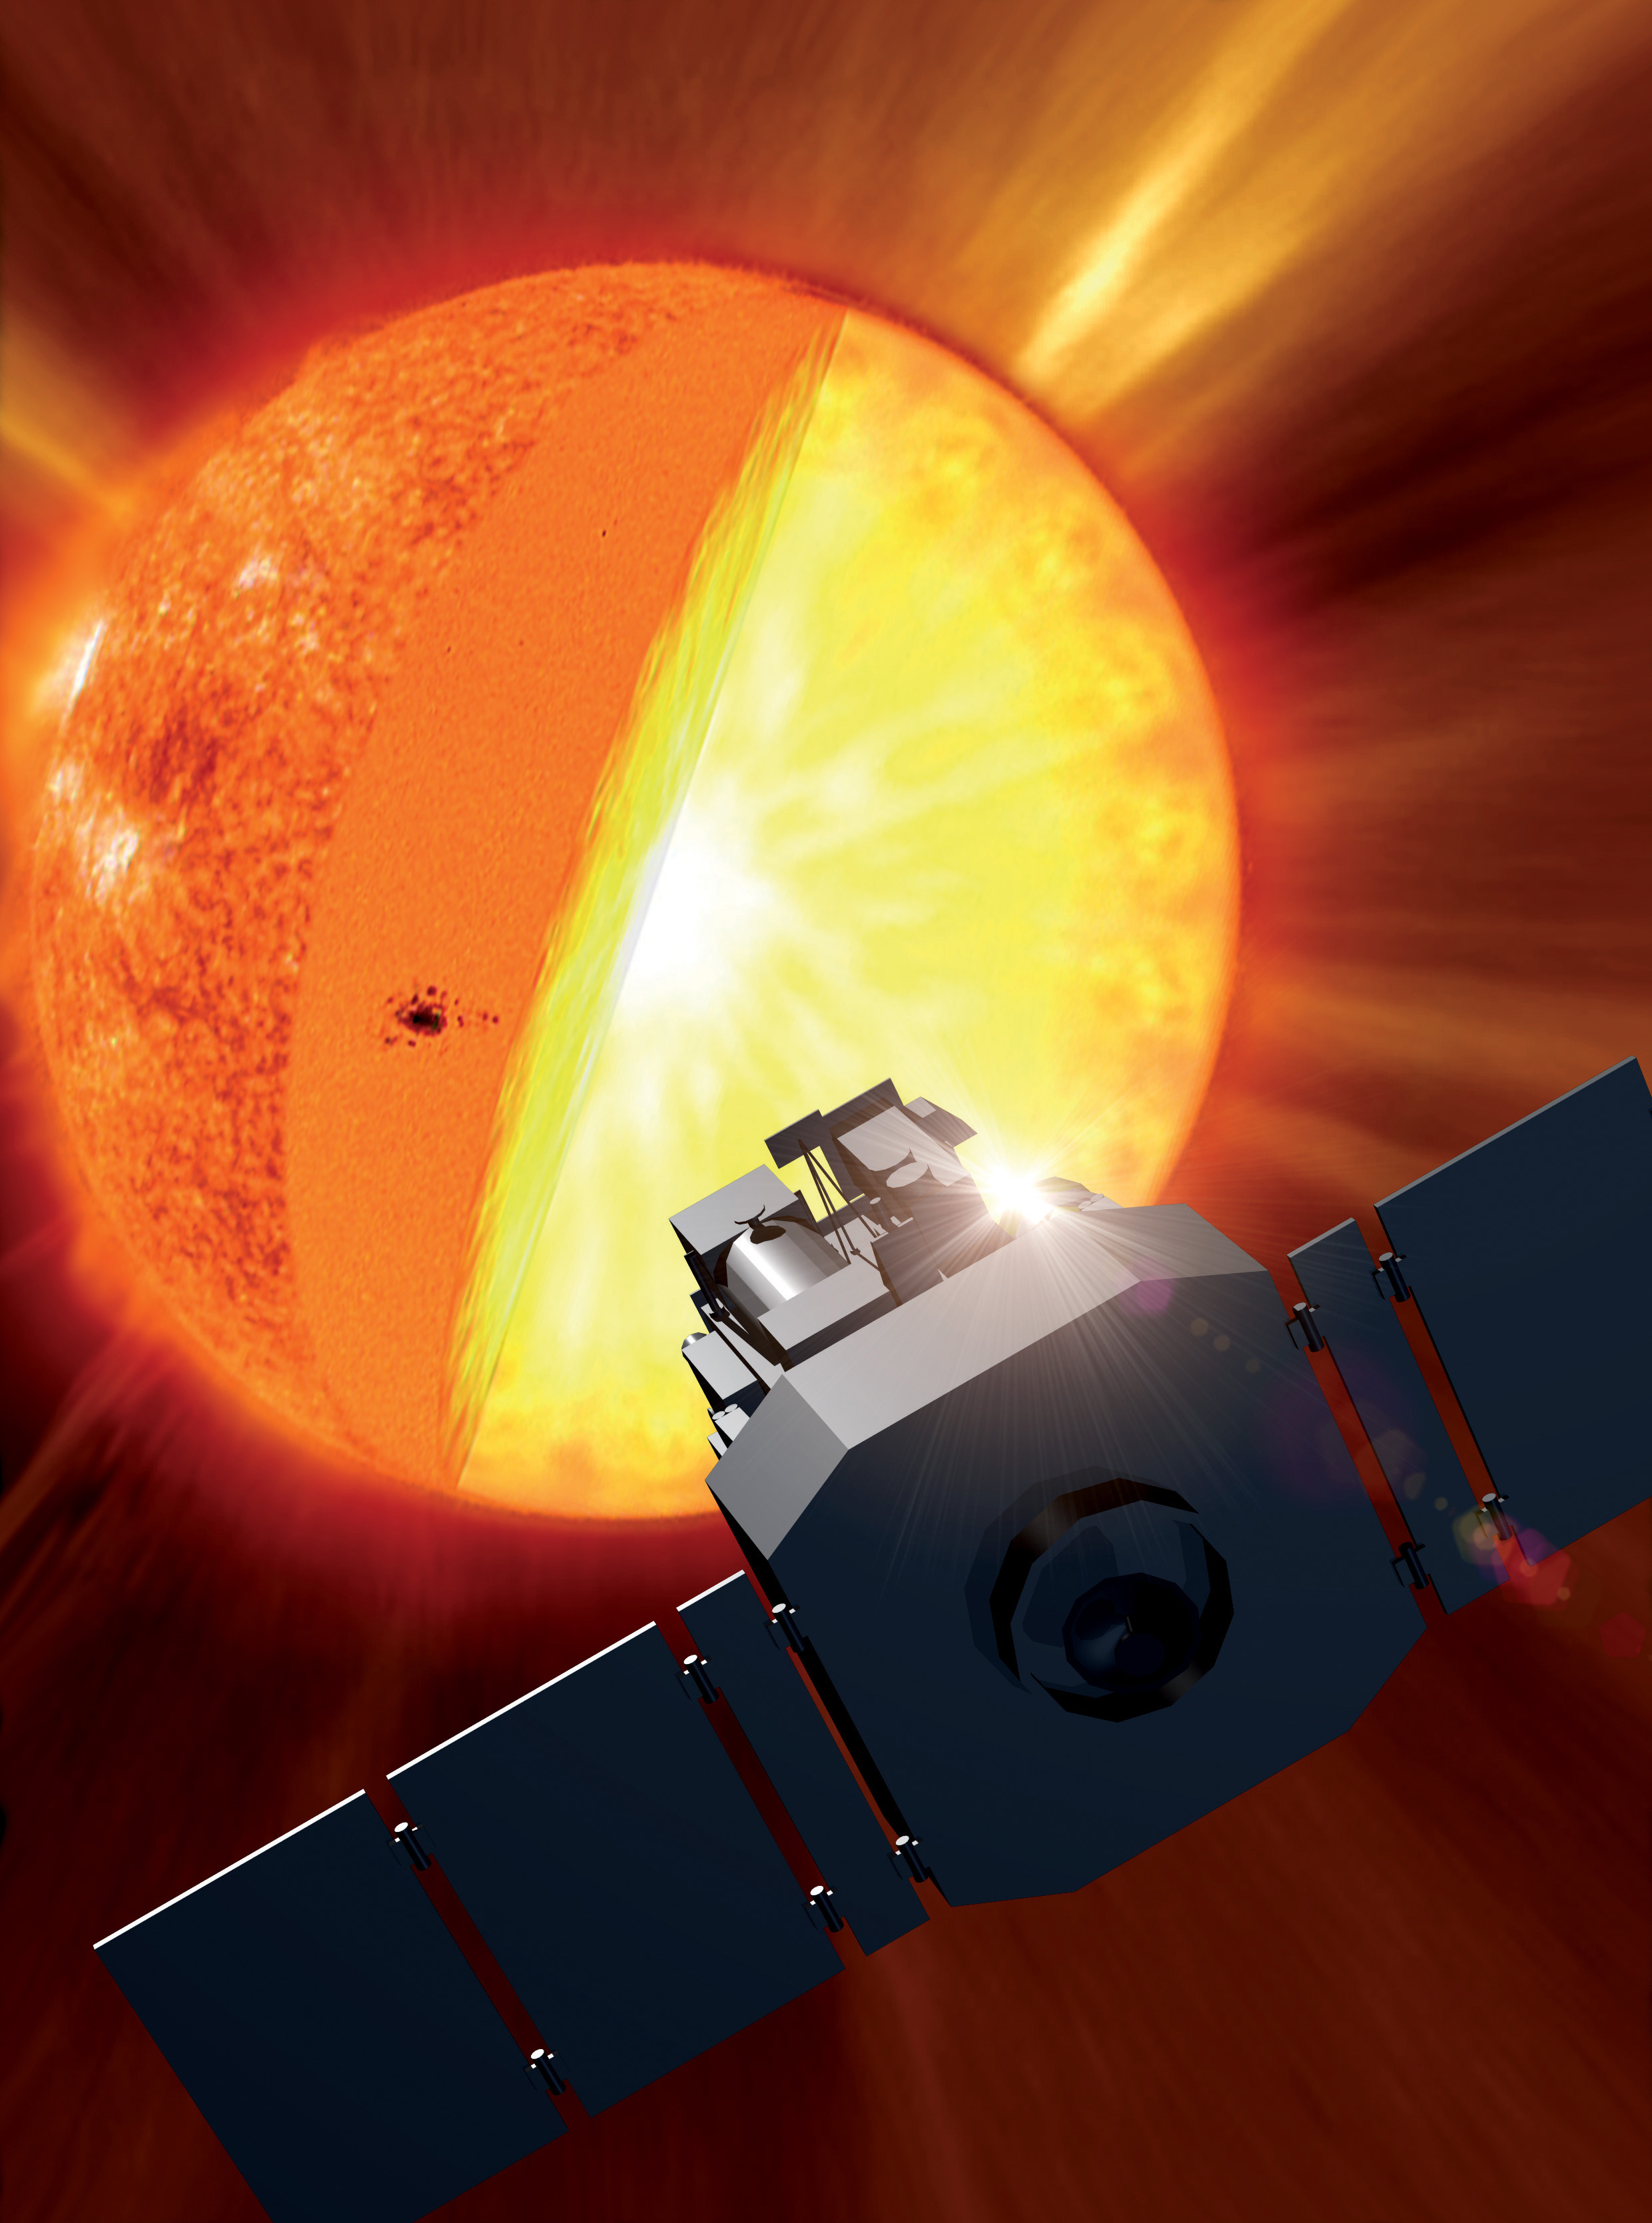 Artist's concept of the SOHO spacecraft exploring the center of the sun. In reality, the spacecraft does this indirectly, by analyzing ripples on the solar surface that come from the deep interior.